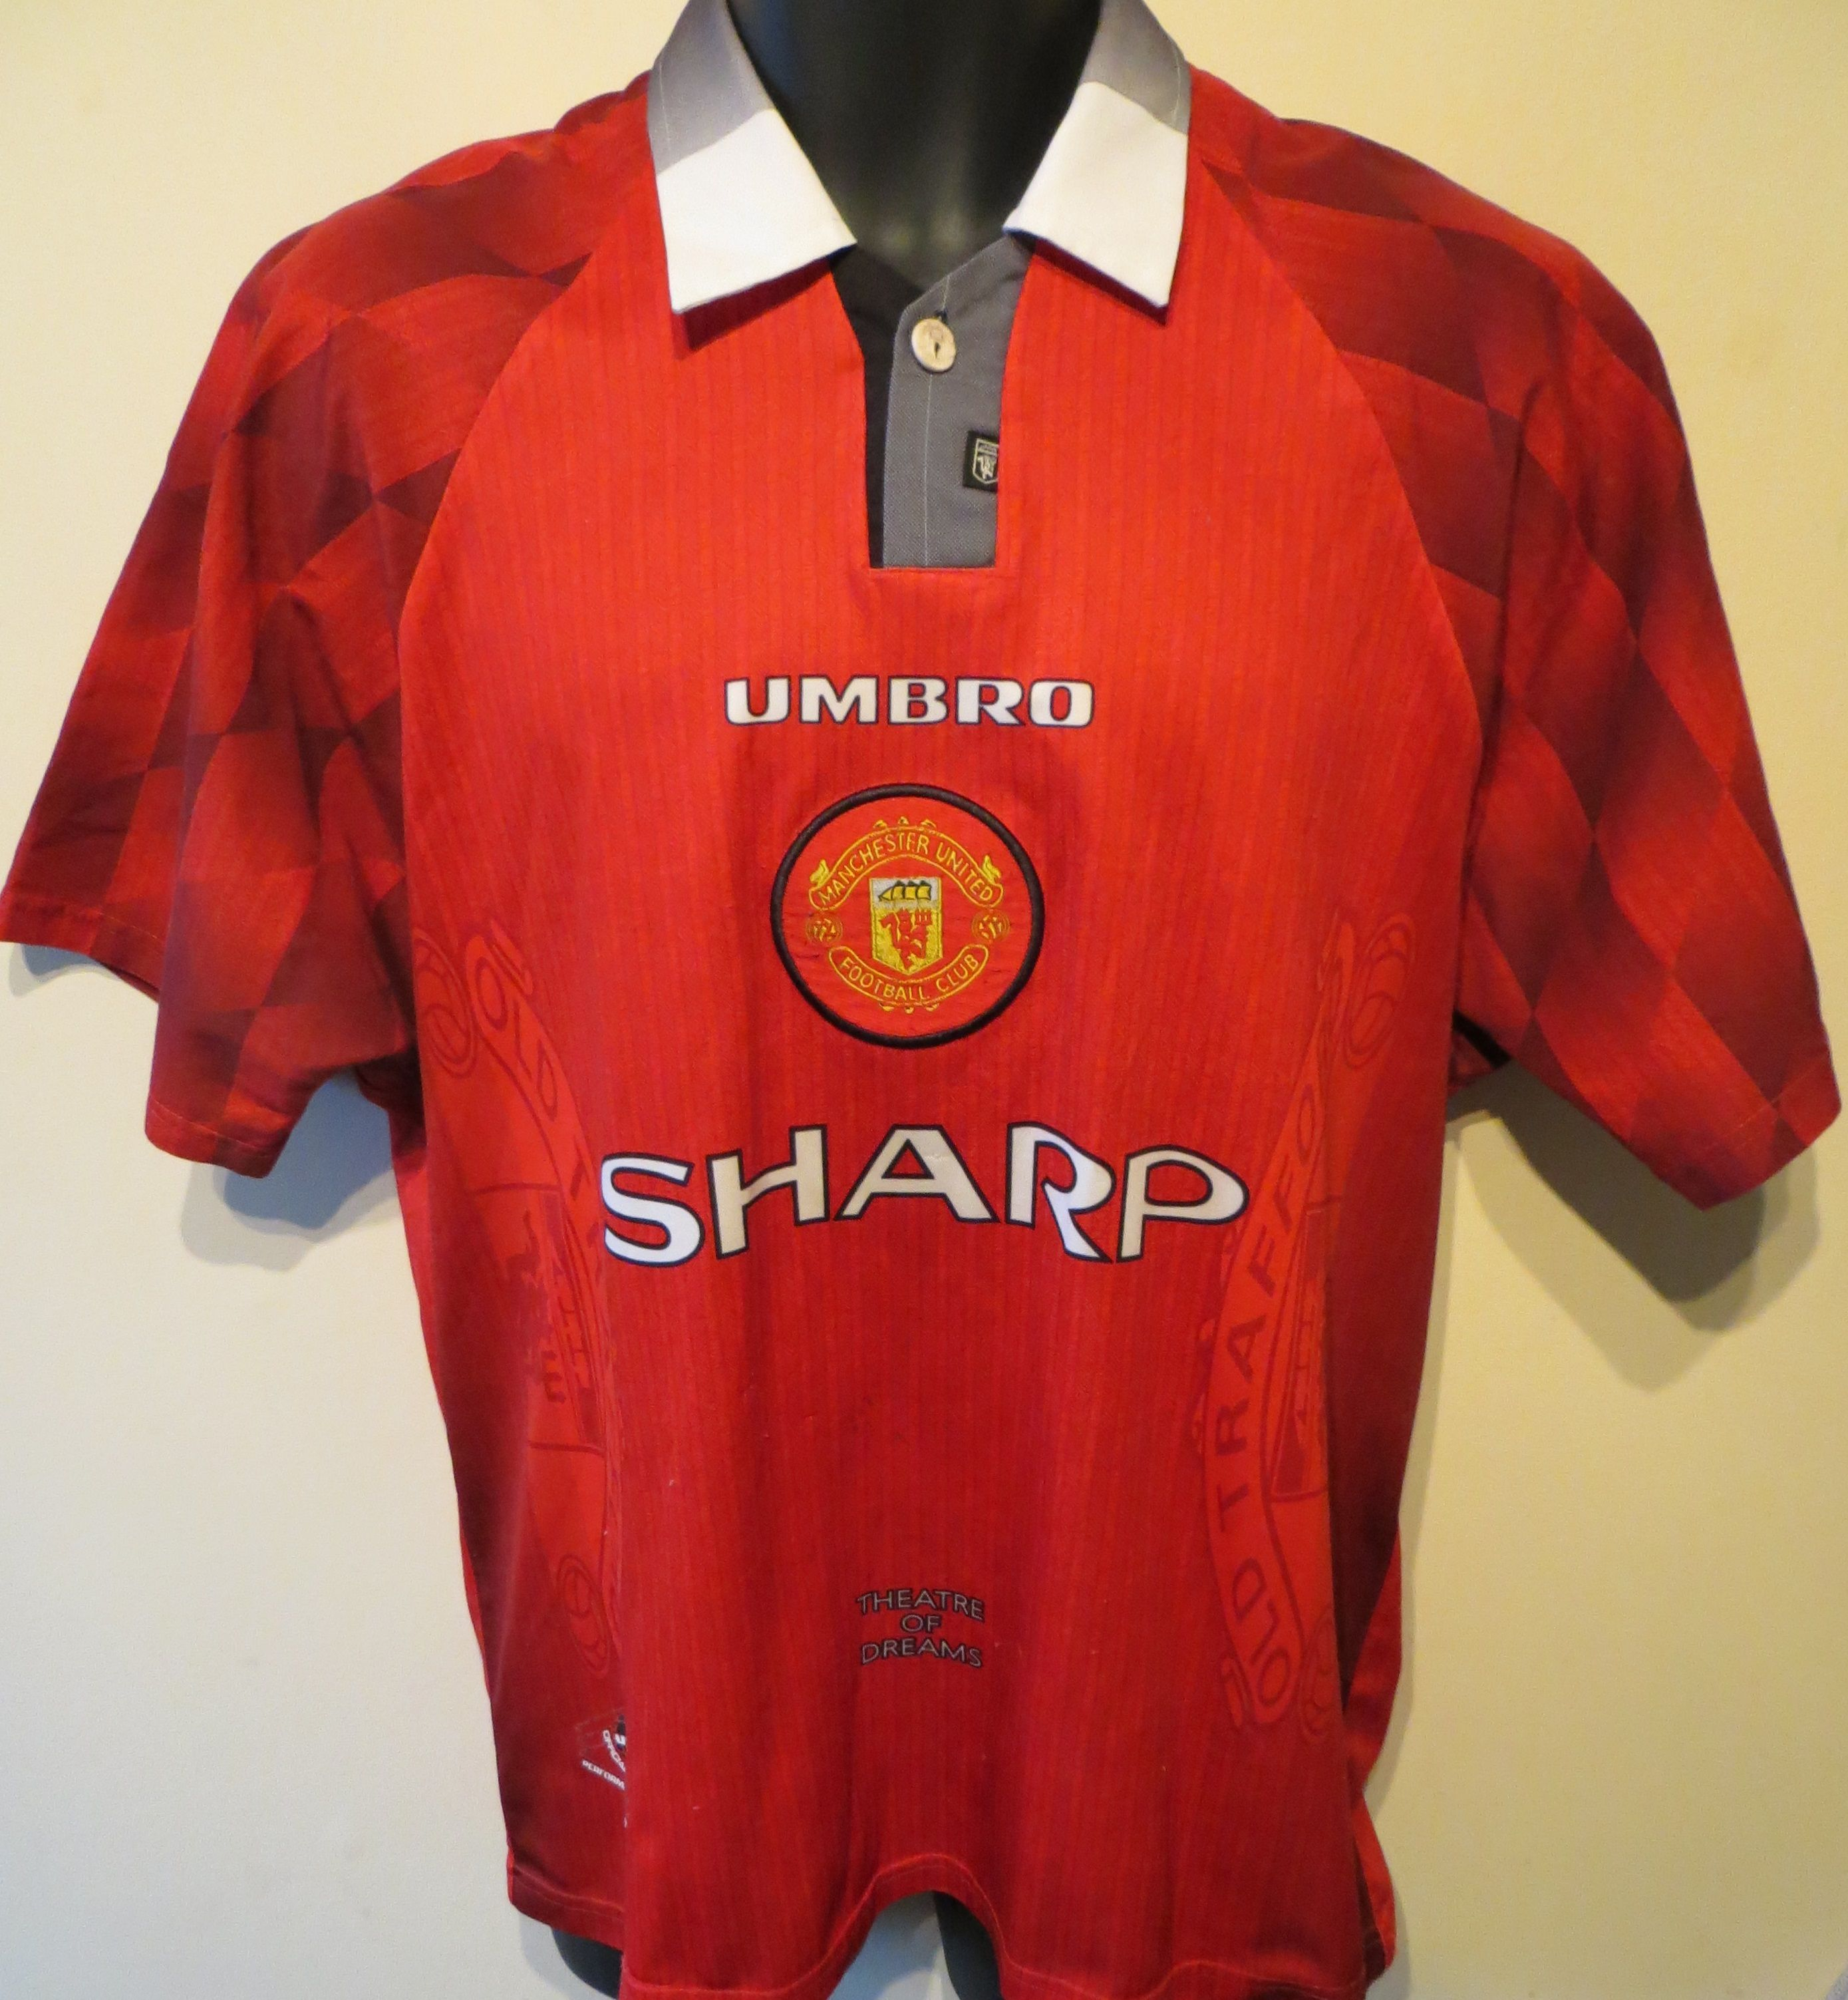 56921d244 Manchester United  Theatre of Dreams  jersey by Umbro